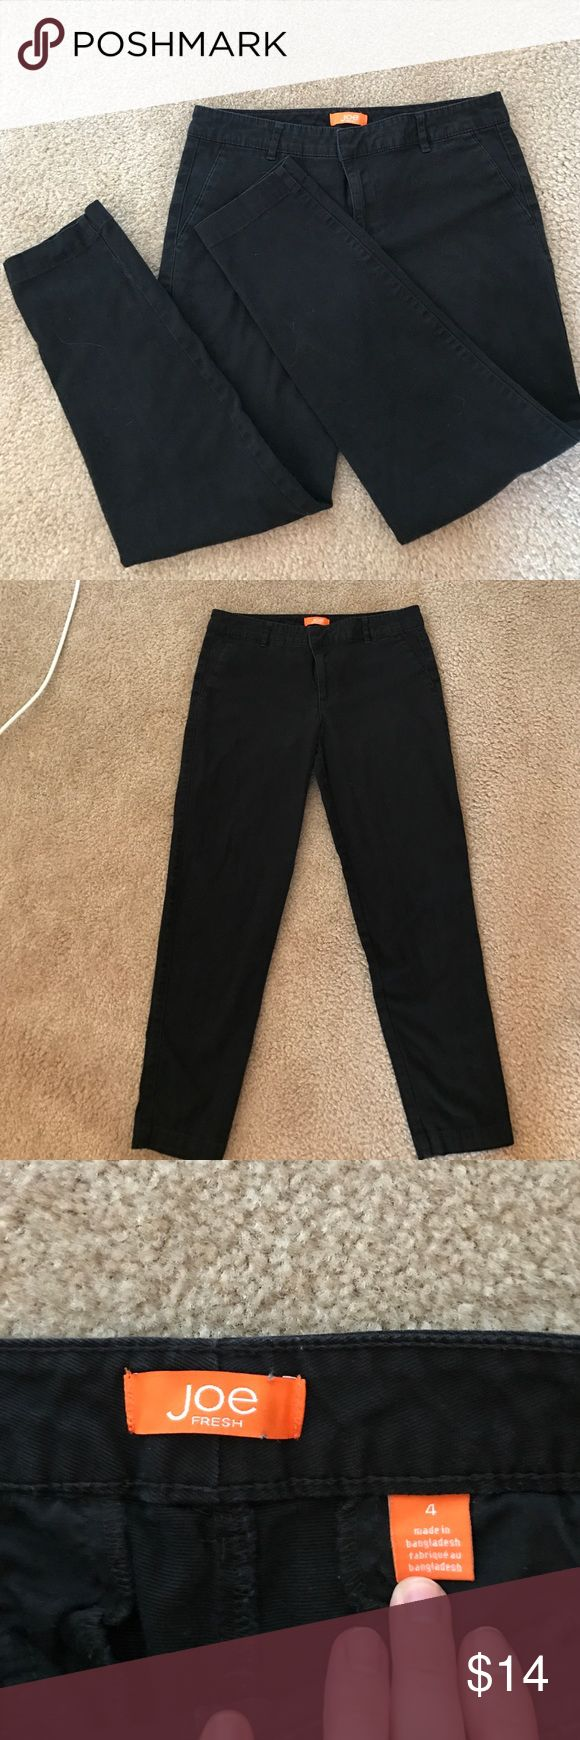 "Black Joe Fresh Ankle Pants Size 4 Black Joe Fresh ankle pants. Size 4. Not denim, but thicker than dress pants. I bought them off of here and they are beautiful Pants, just too big for me! I have a 26.5"" waist and a 36"" butt and they are just a tad too big for me. Joe Fresh Pants Ankle & Cropped"